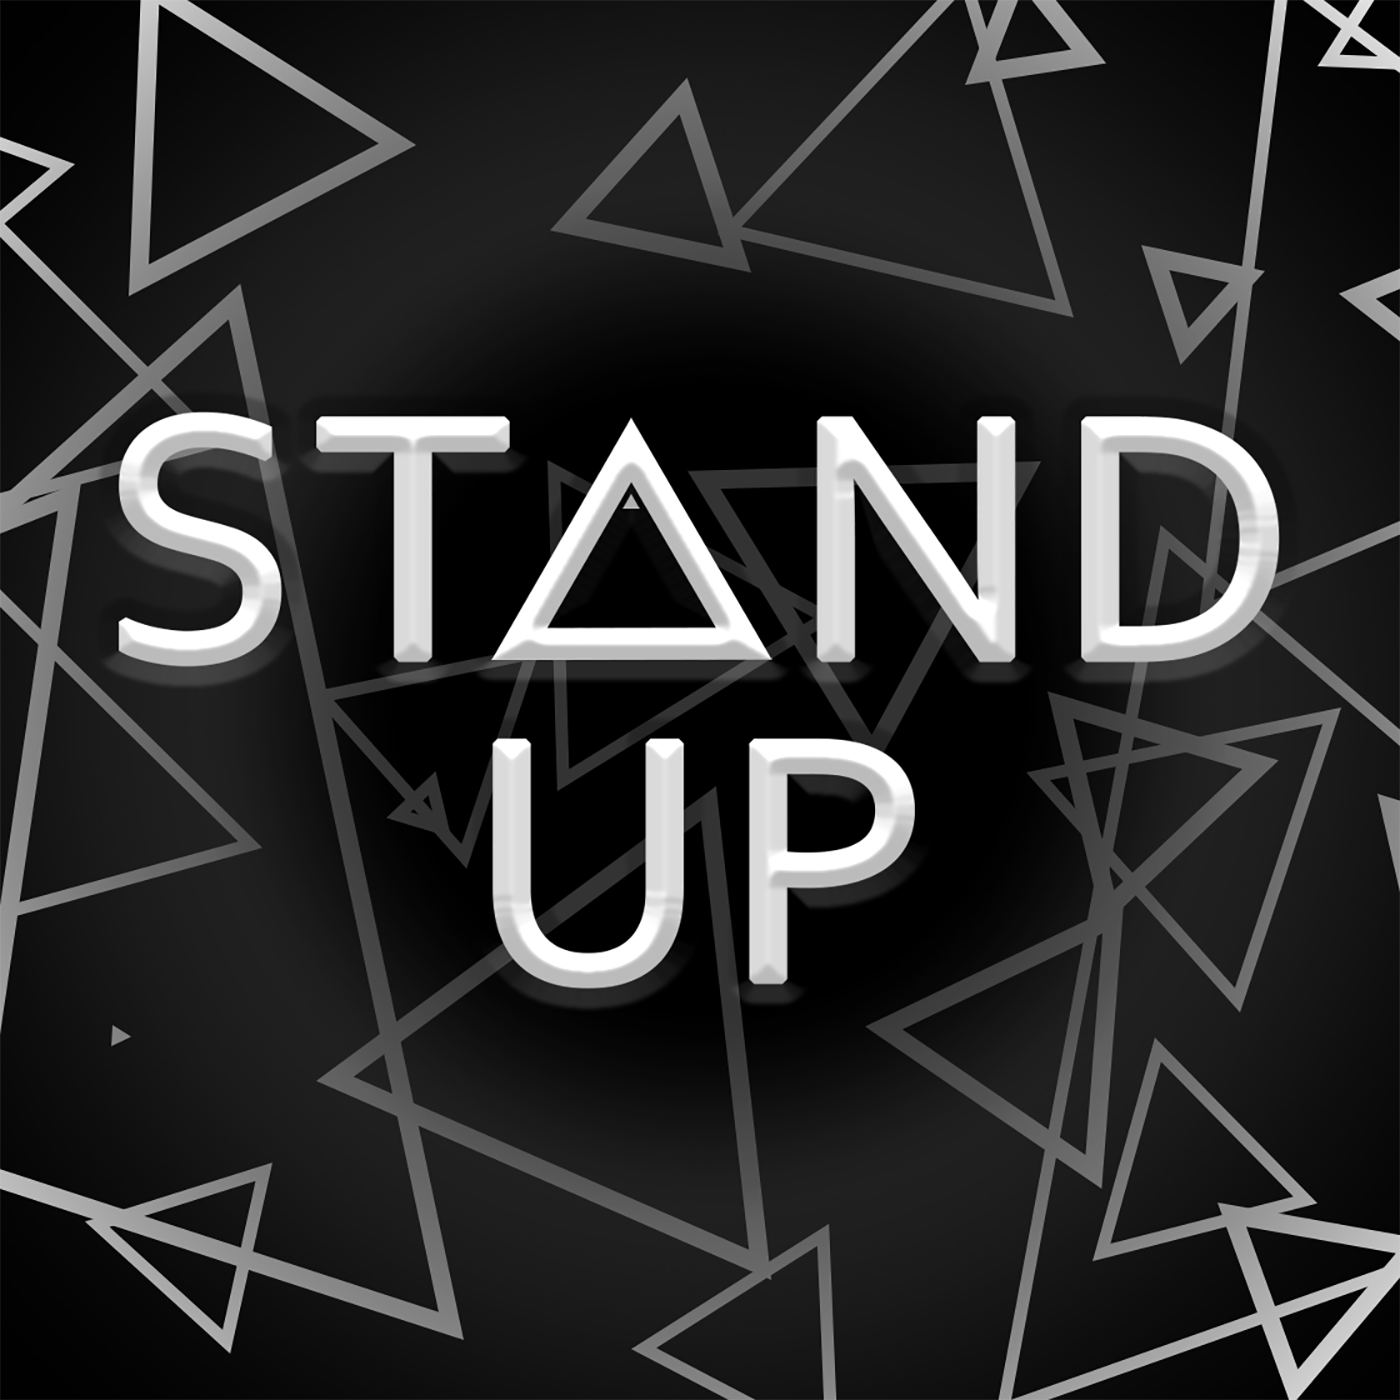 1. STAND UP2. Bubble -